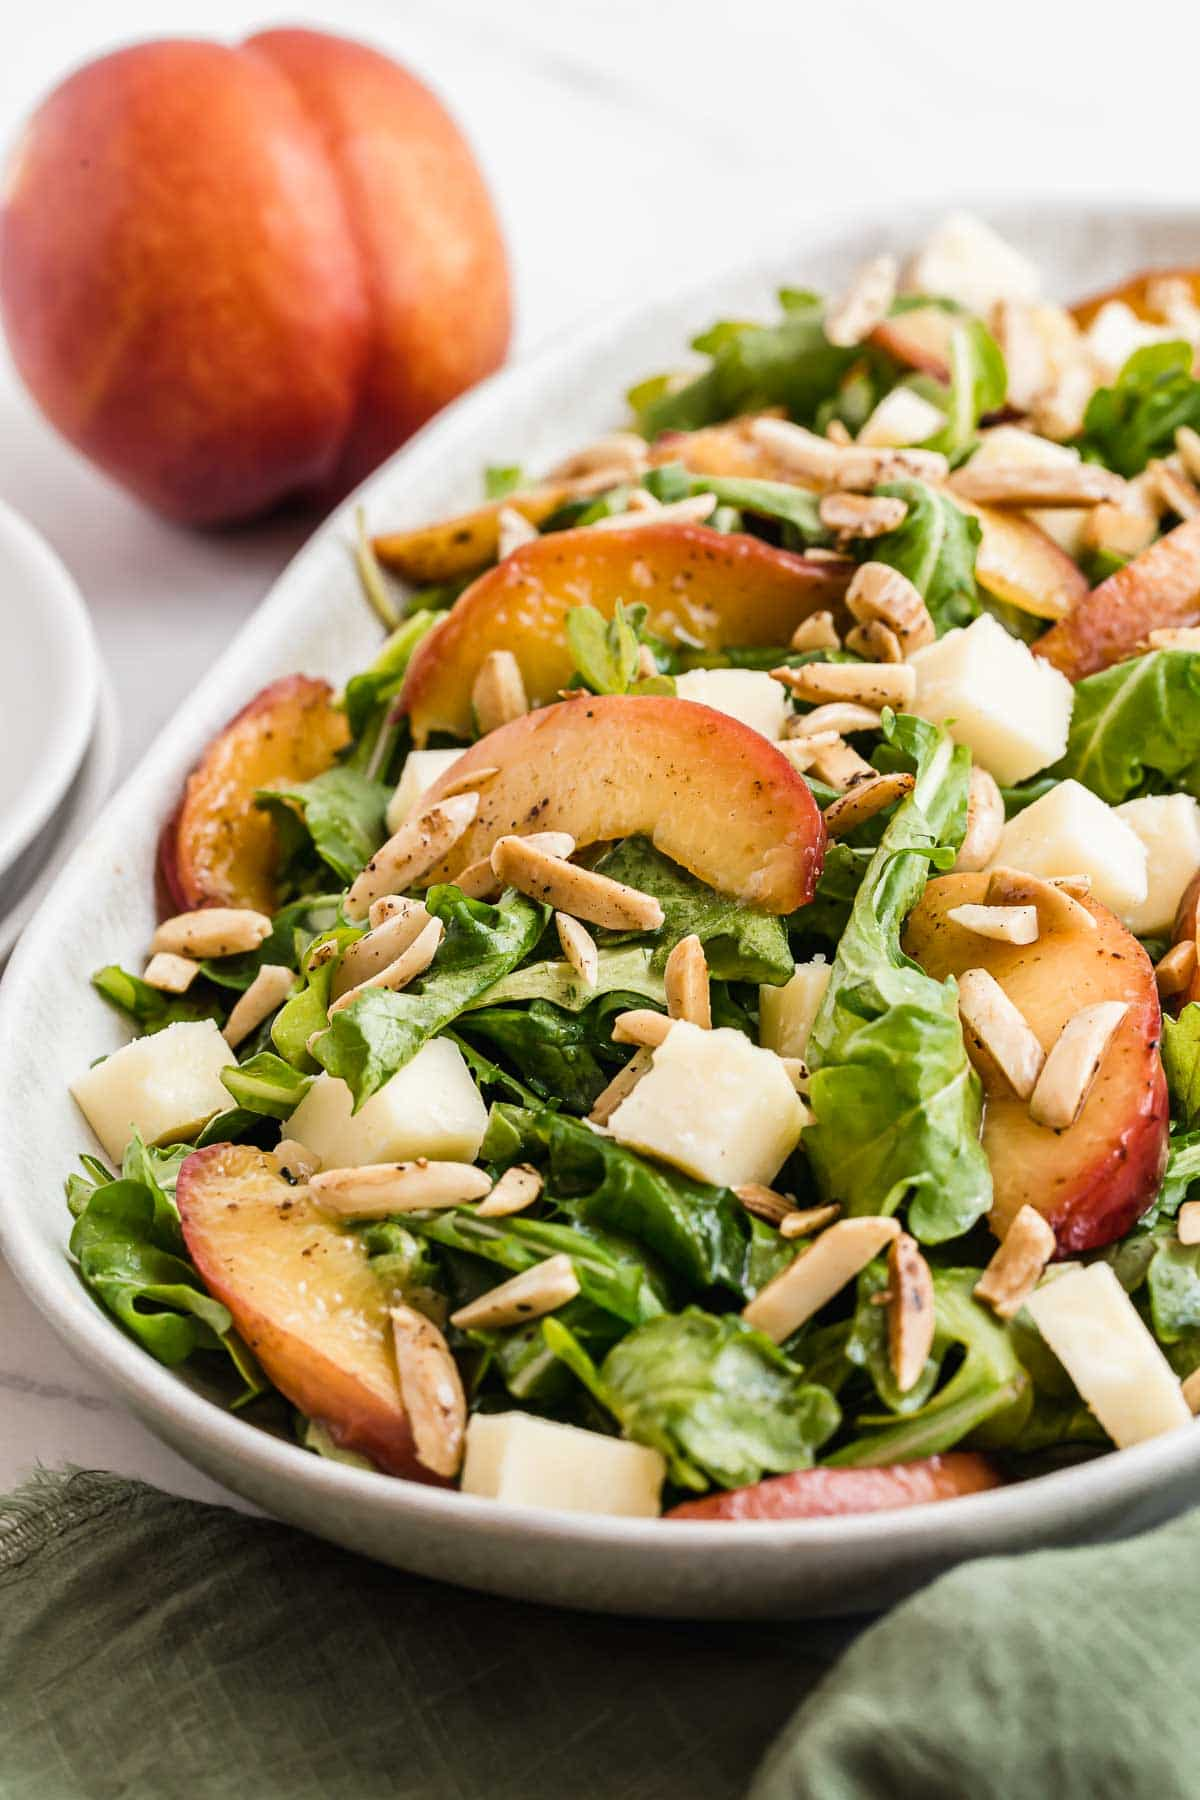 Arugula salad with sliced nectarines on top and almonds.